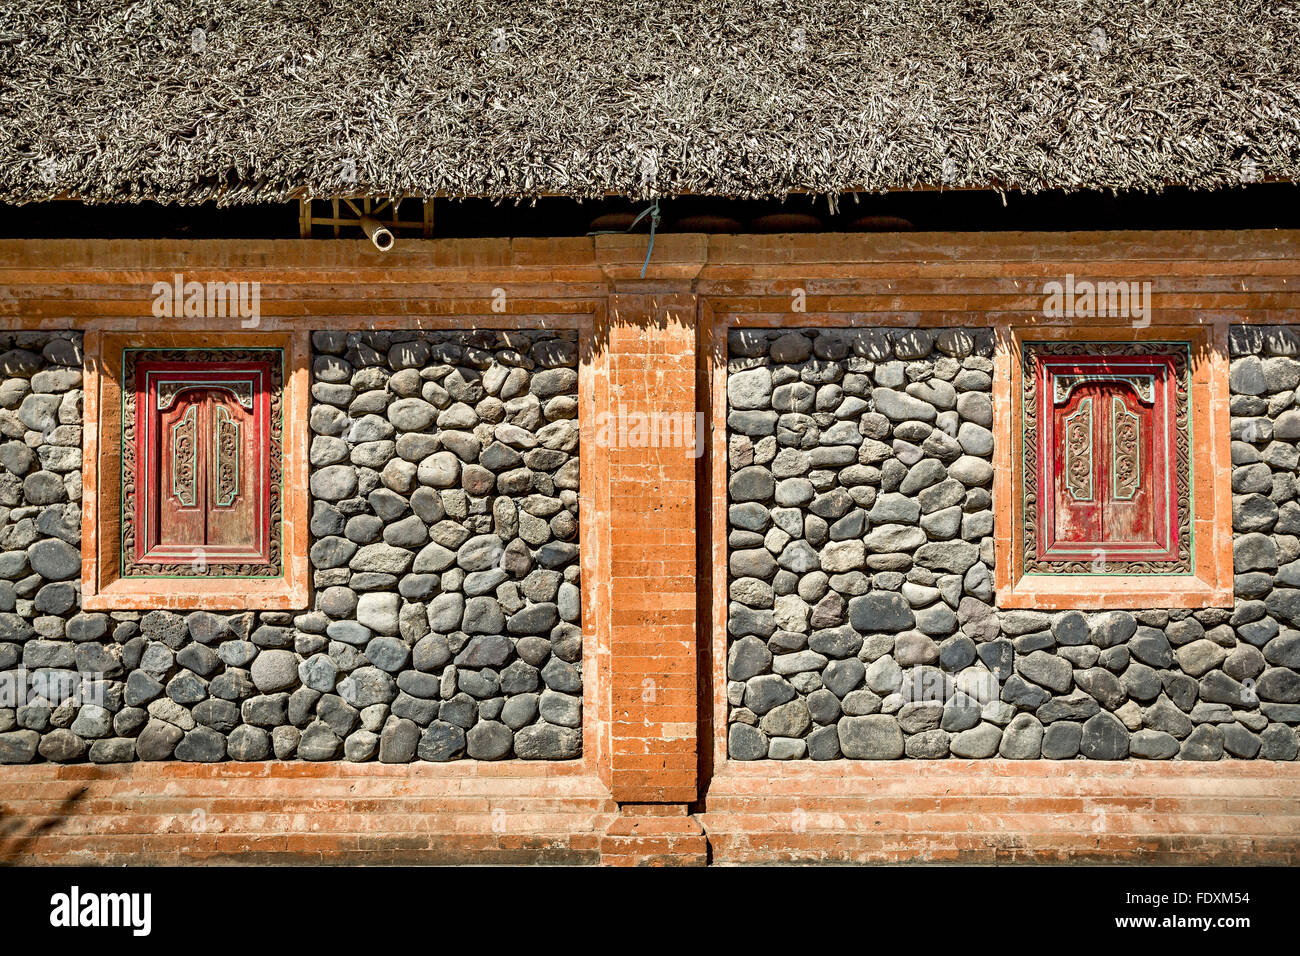 Bali Ethnic wooden crafted windows - Stock Image